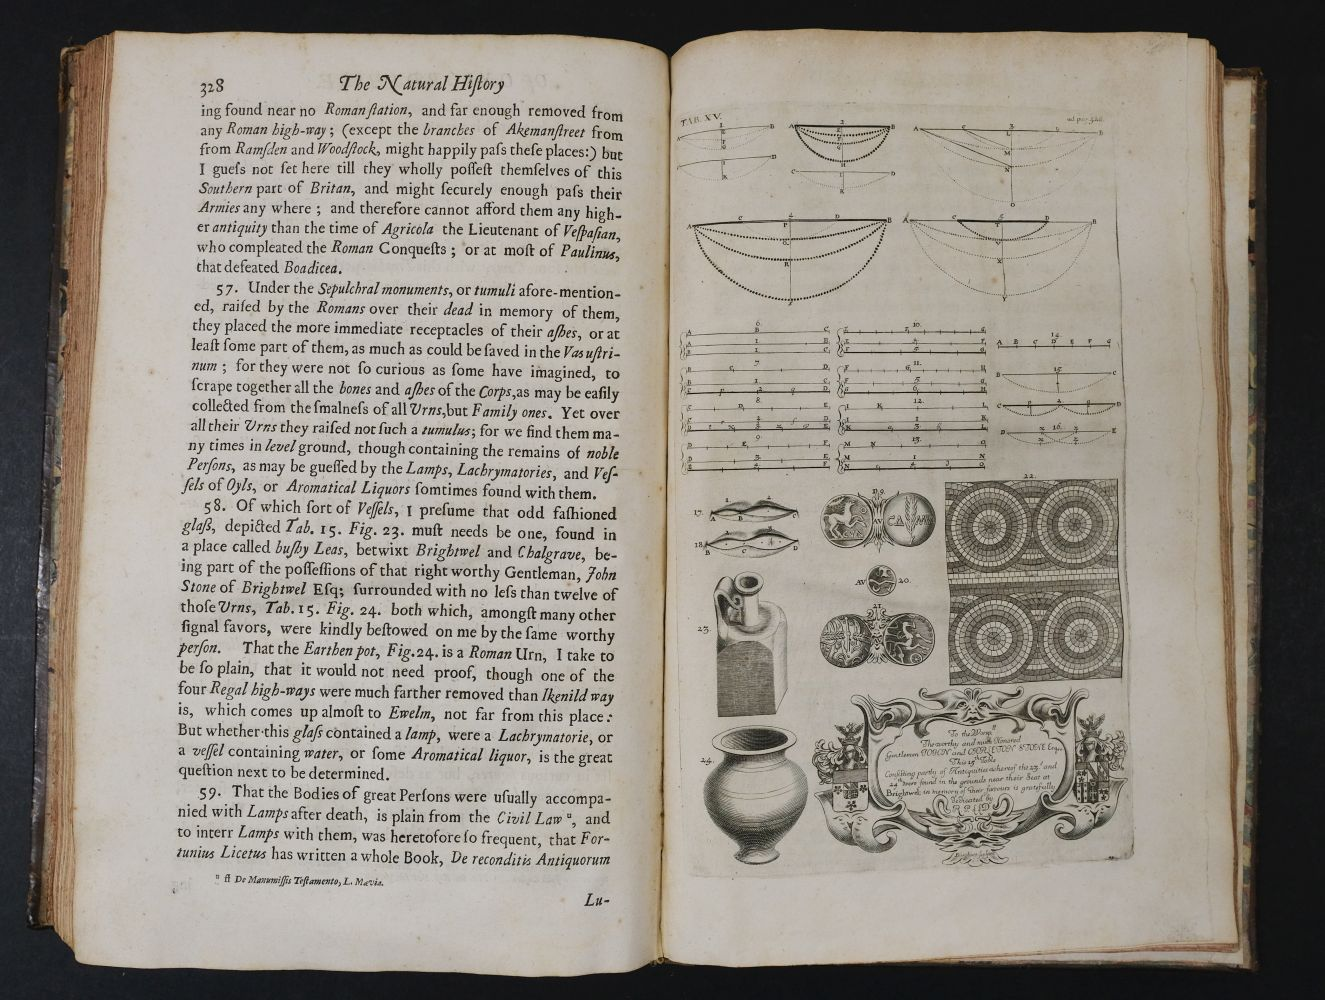 Plot (Robert). The Natural History of Oxfordshire, 1677 - Image 9 of 11